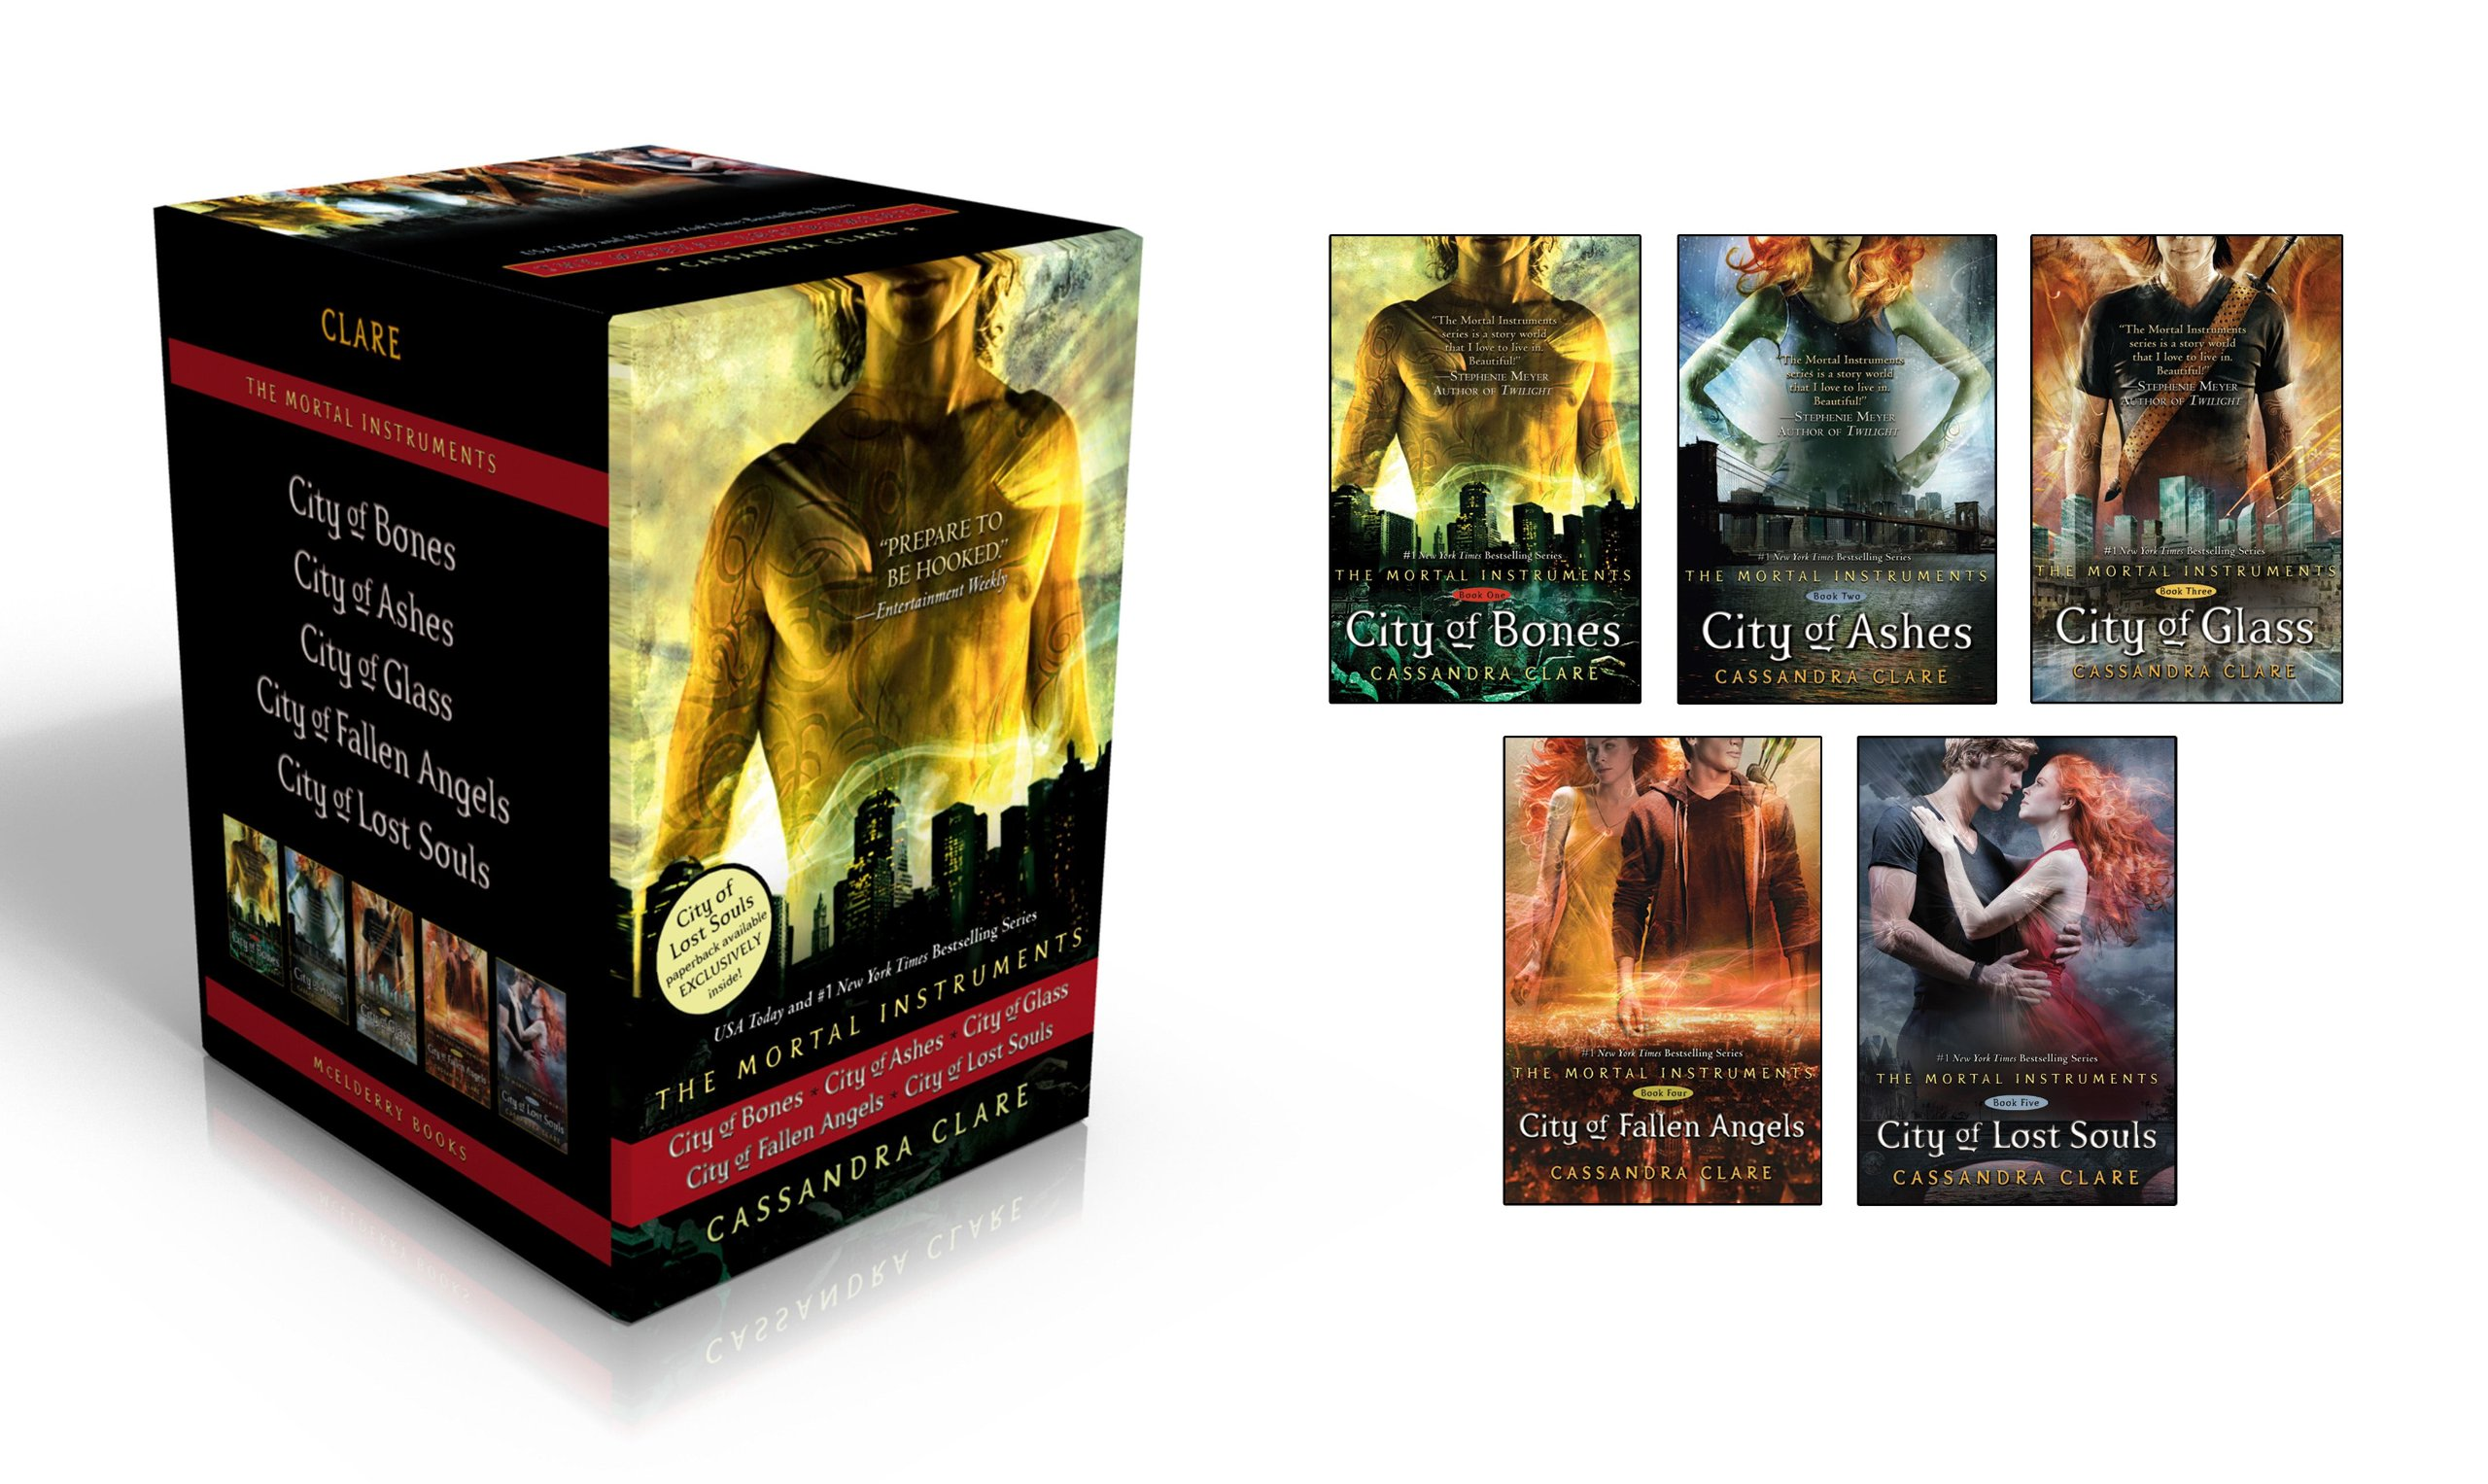 City of Bones/City of Ashes/City of Glass/City of Fallen Angels ...